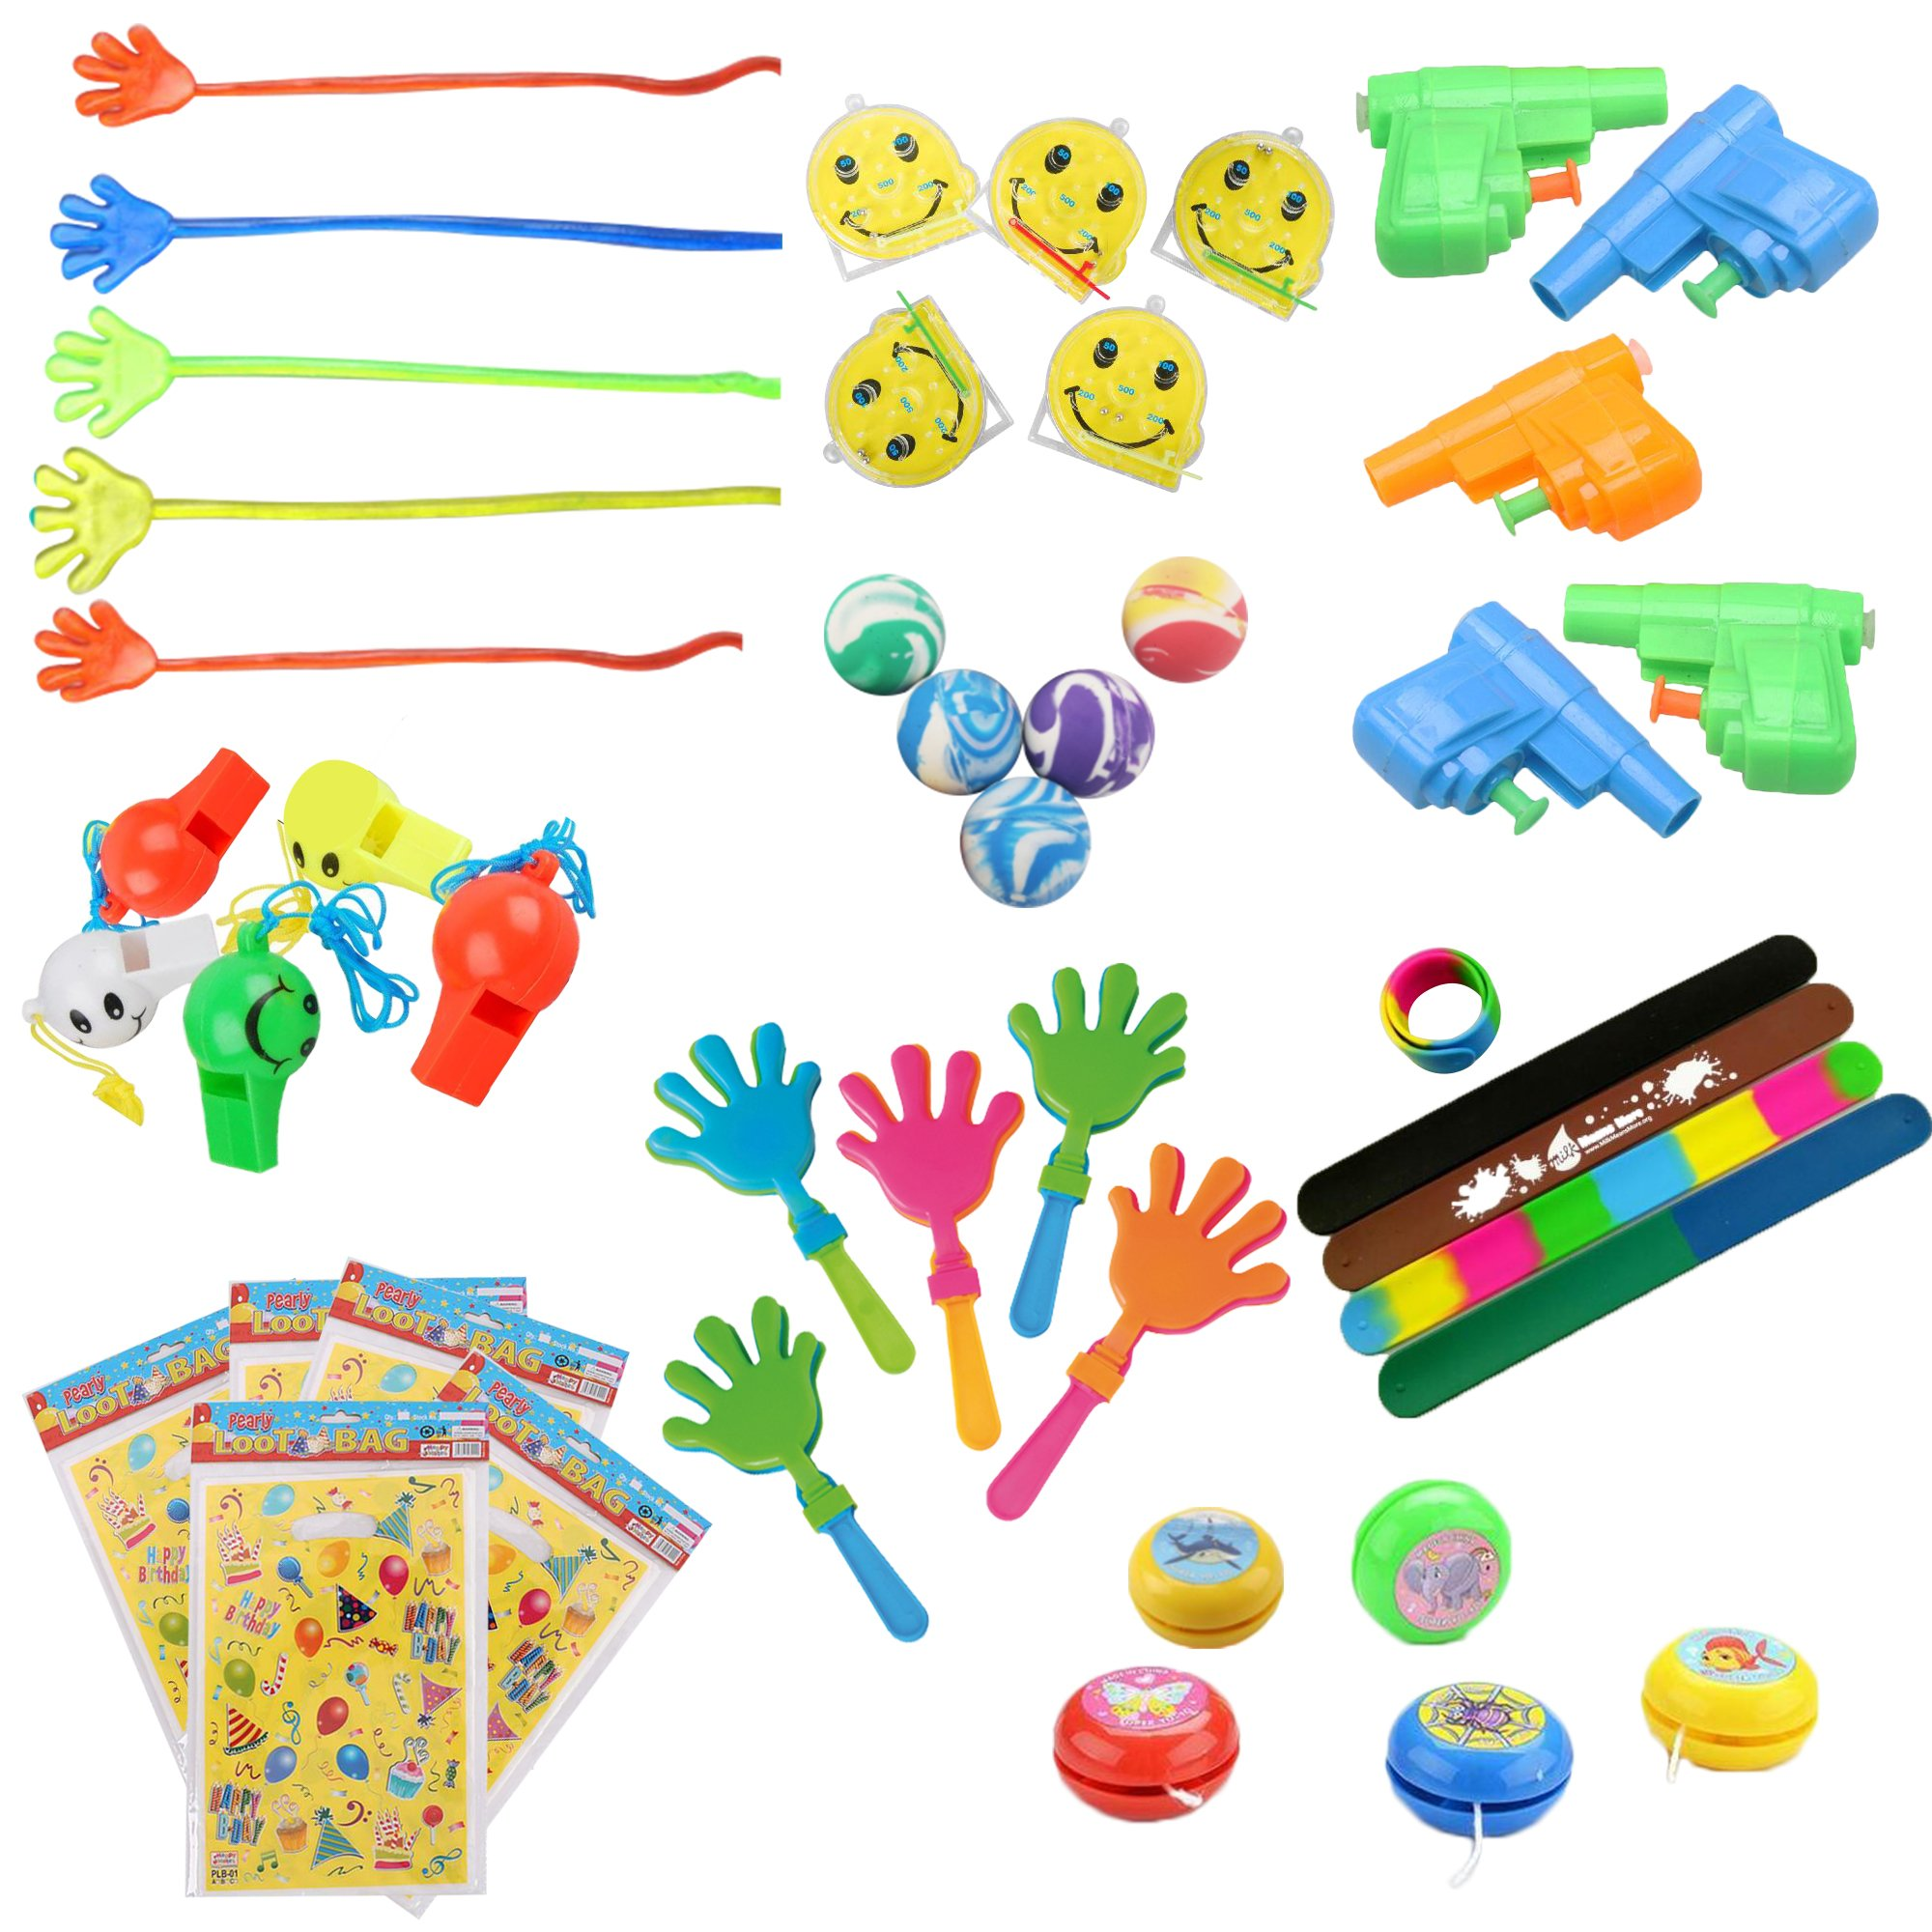 Best Selling Party Favors All In One Pack, Party Bags Included, Party Favors For Kids, Birthday Party Favors, Party Favors Bags, Party Favors for toddlers, Party Bags, Special Launch Price!